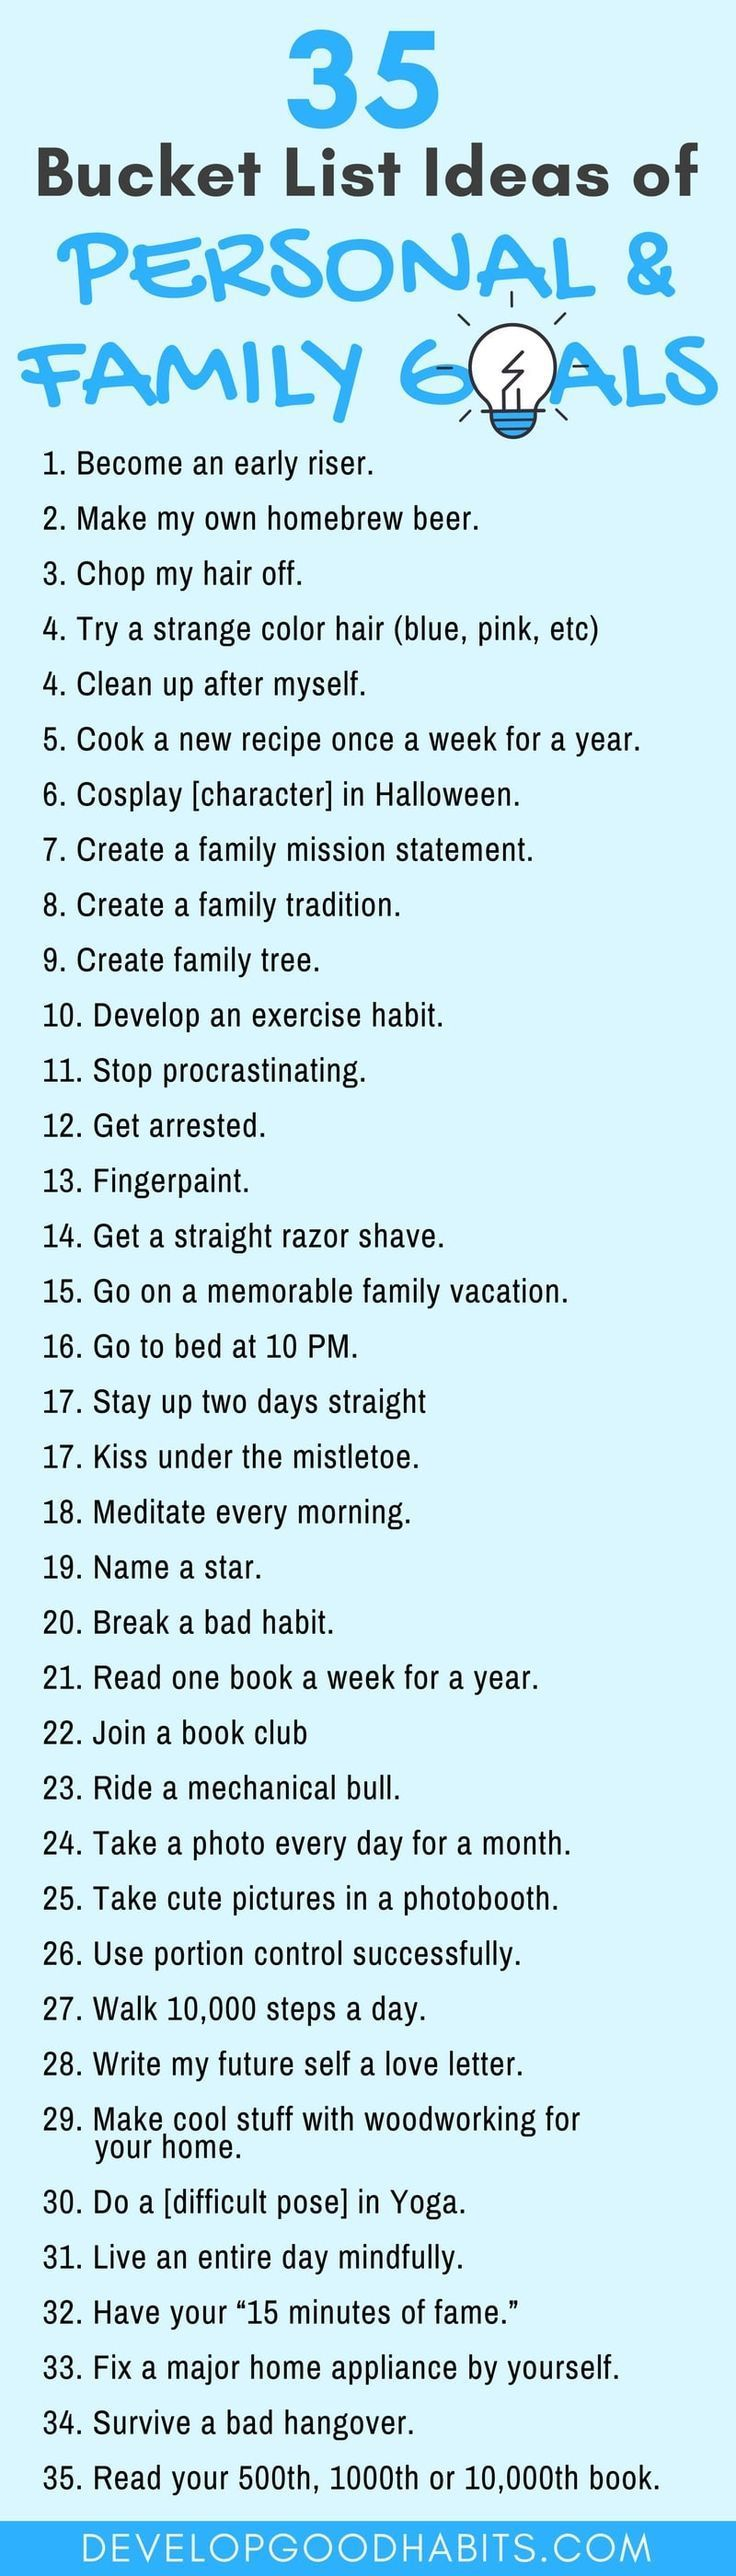 BUCKET LIST ideas   for personal and family goals. A great list of ...